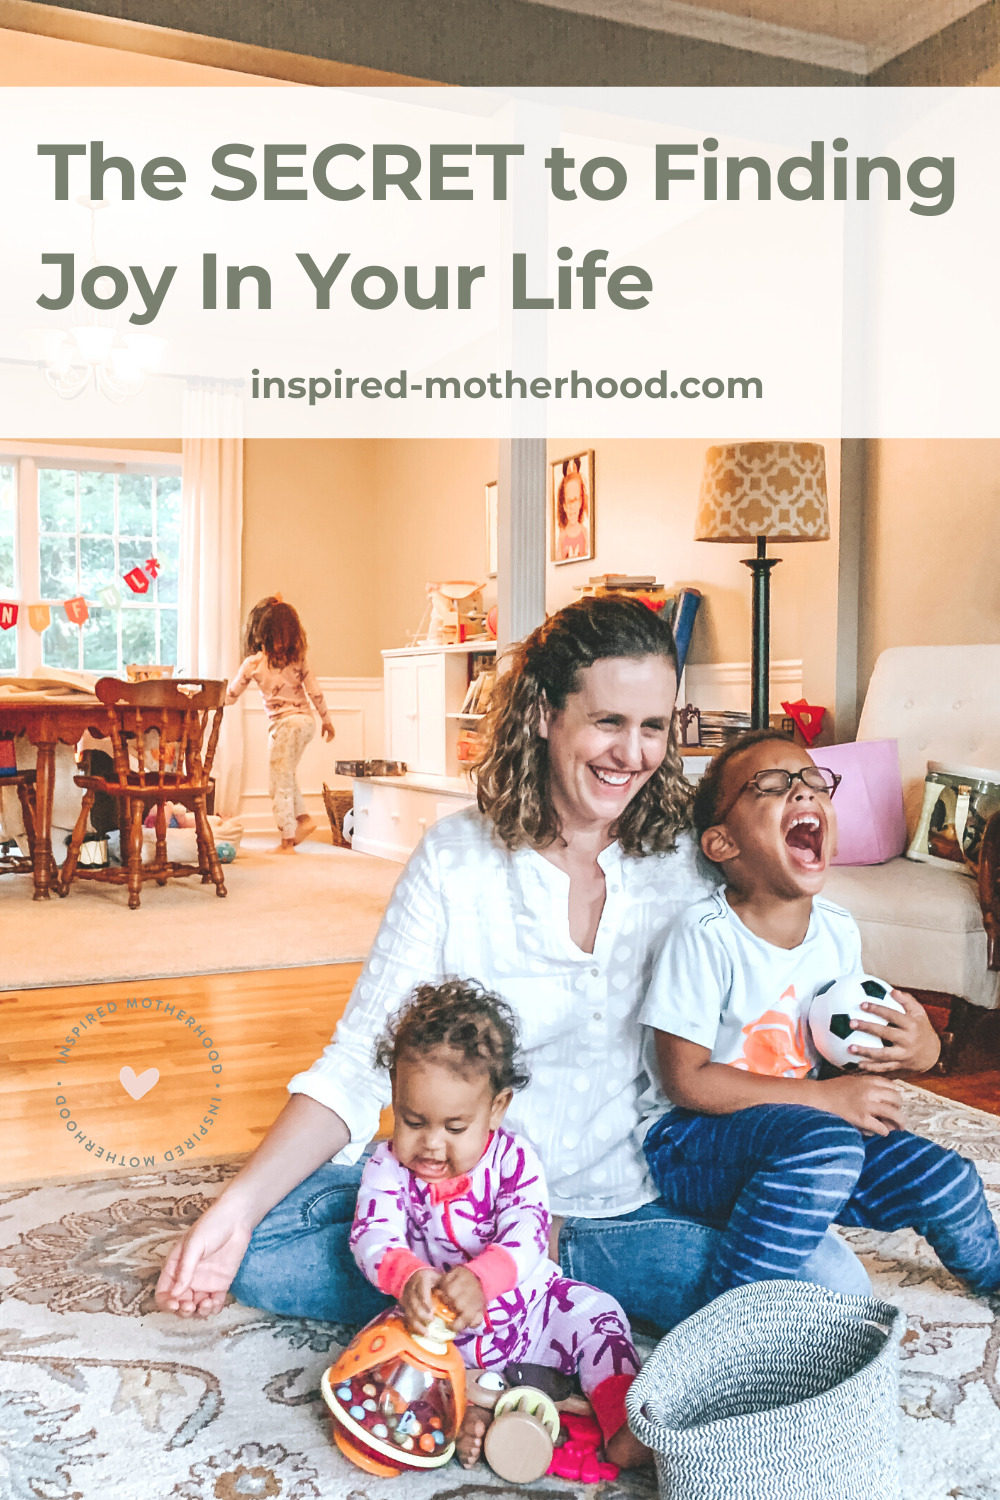 Looking to find more laughter and joy in your life? Here are two great ways to add more joy into your home and your family!